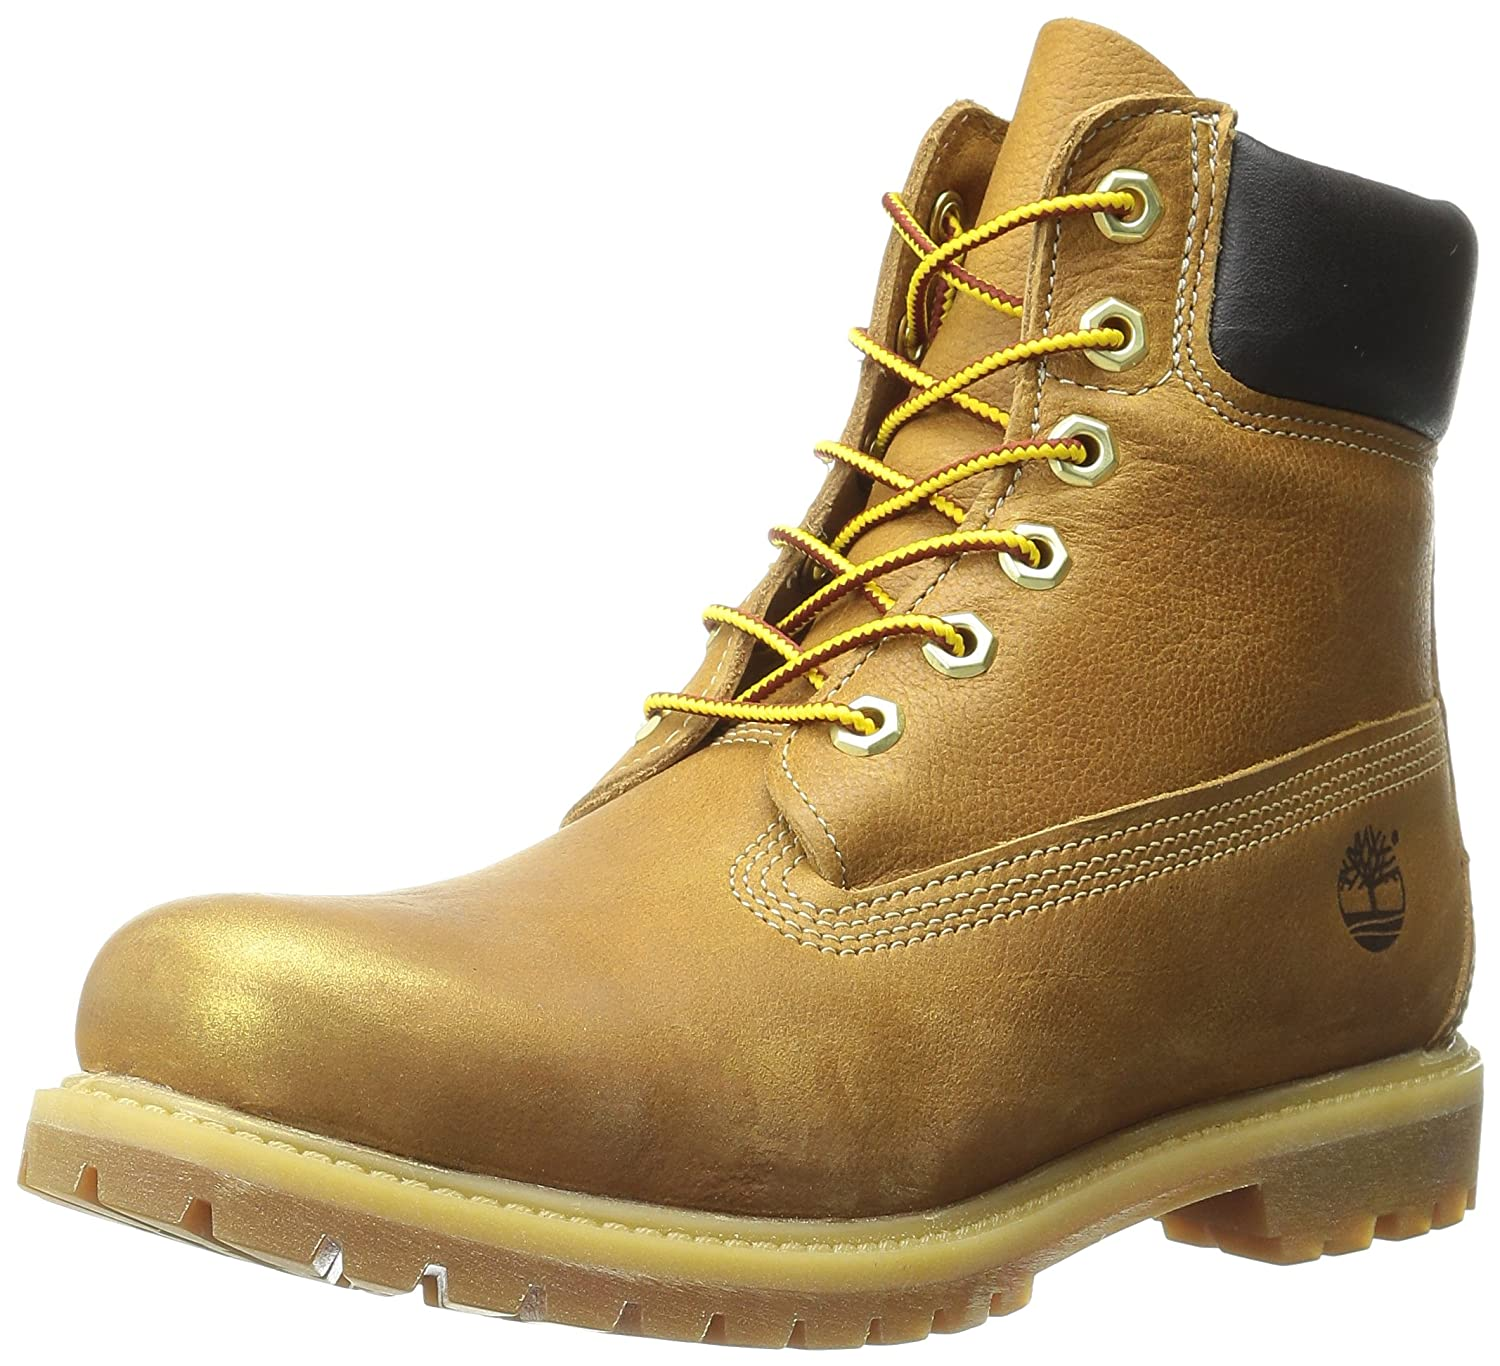 classic timberland boots for women